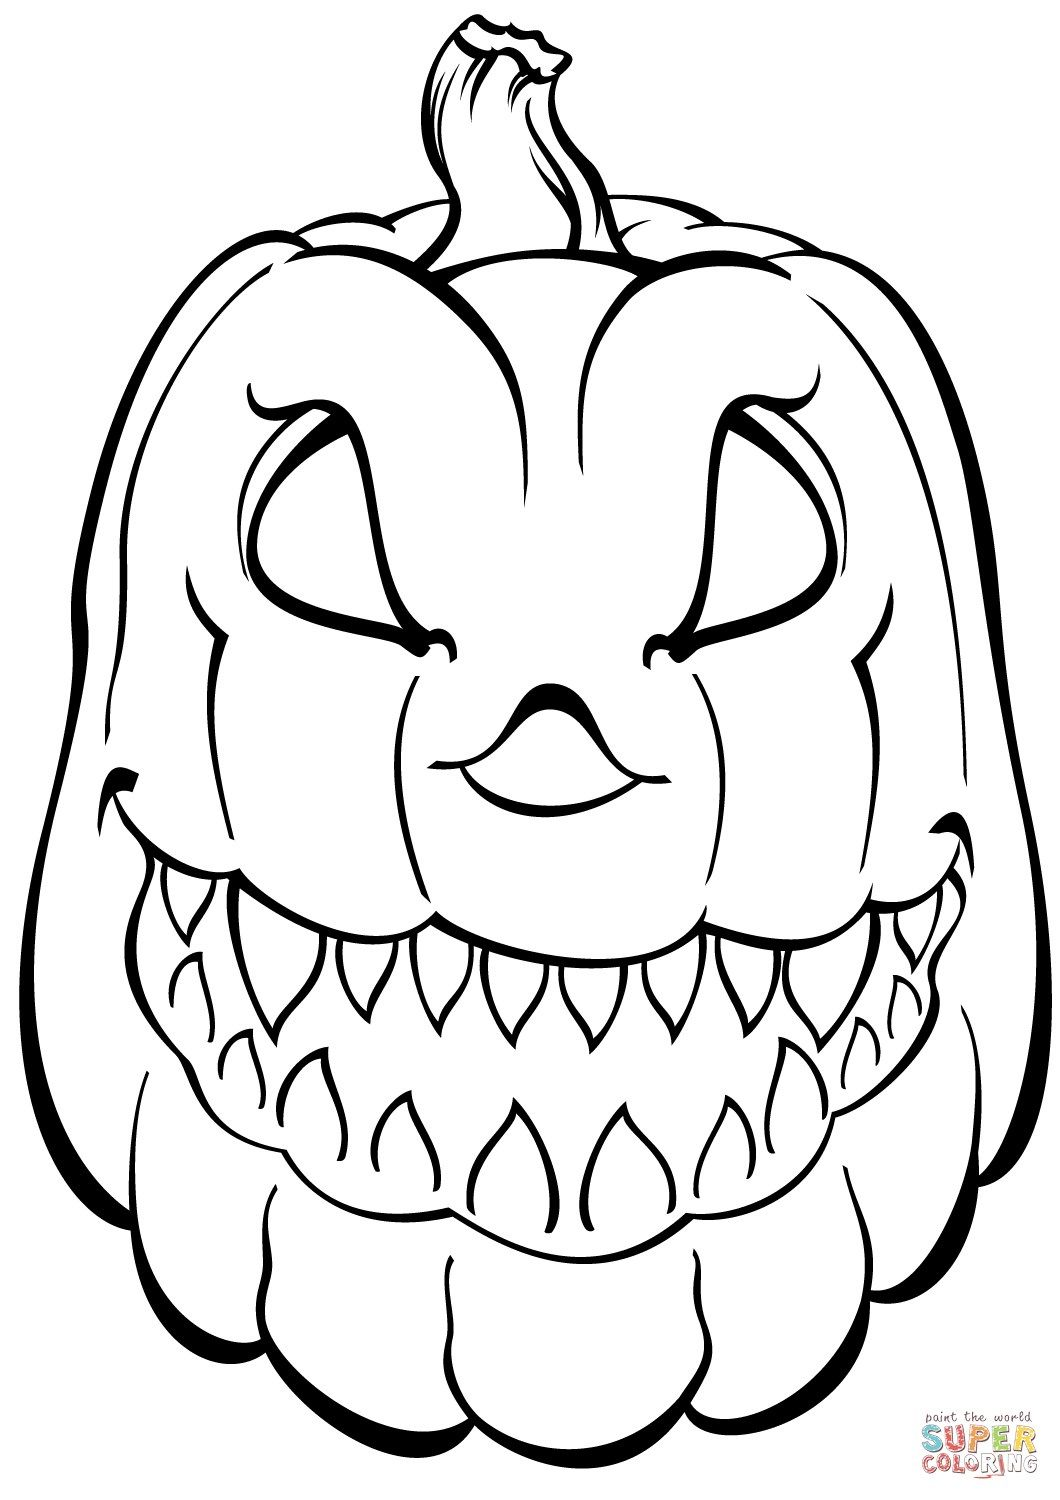 22 Creative Photo Of Pumpkin Coloring Pages Halloween Coloring